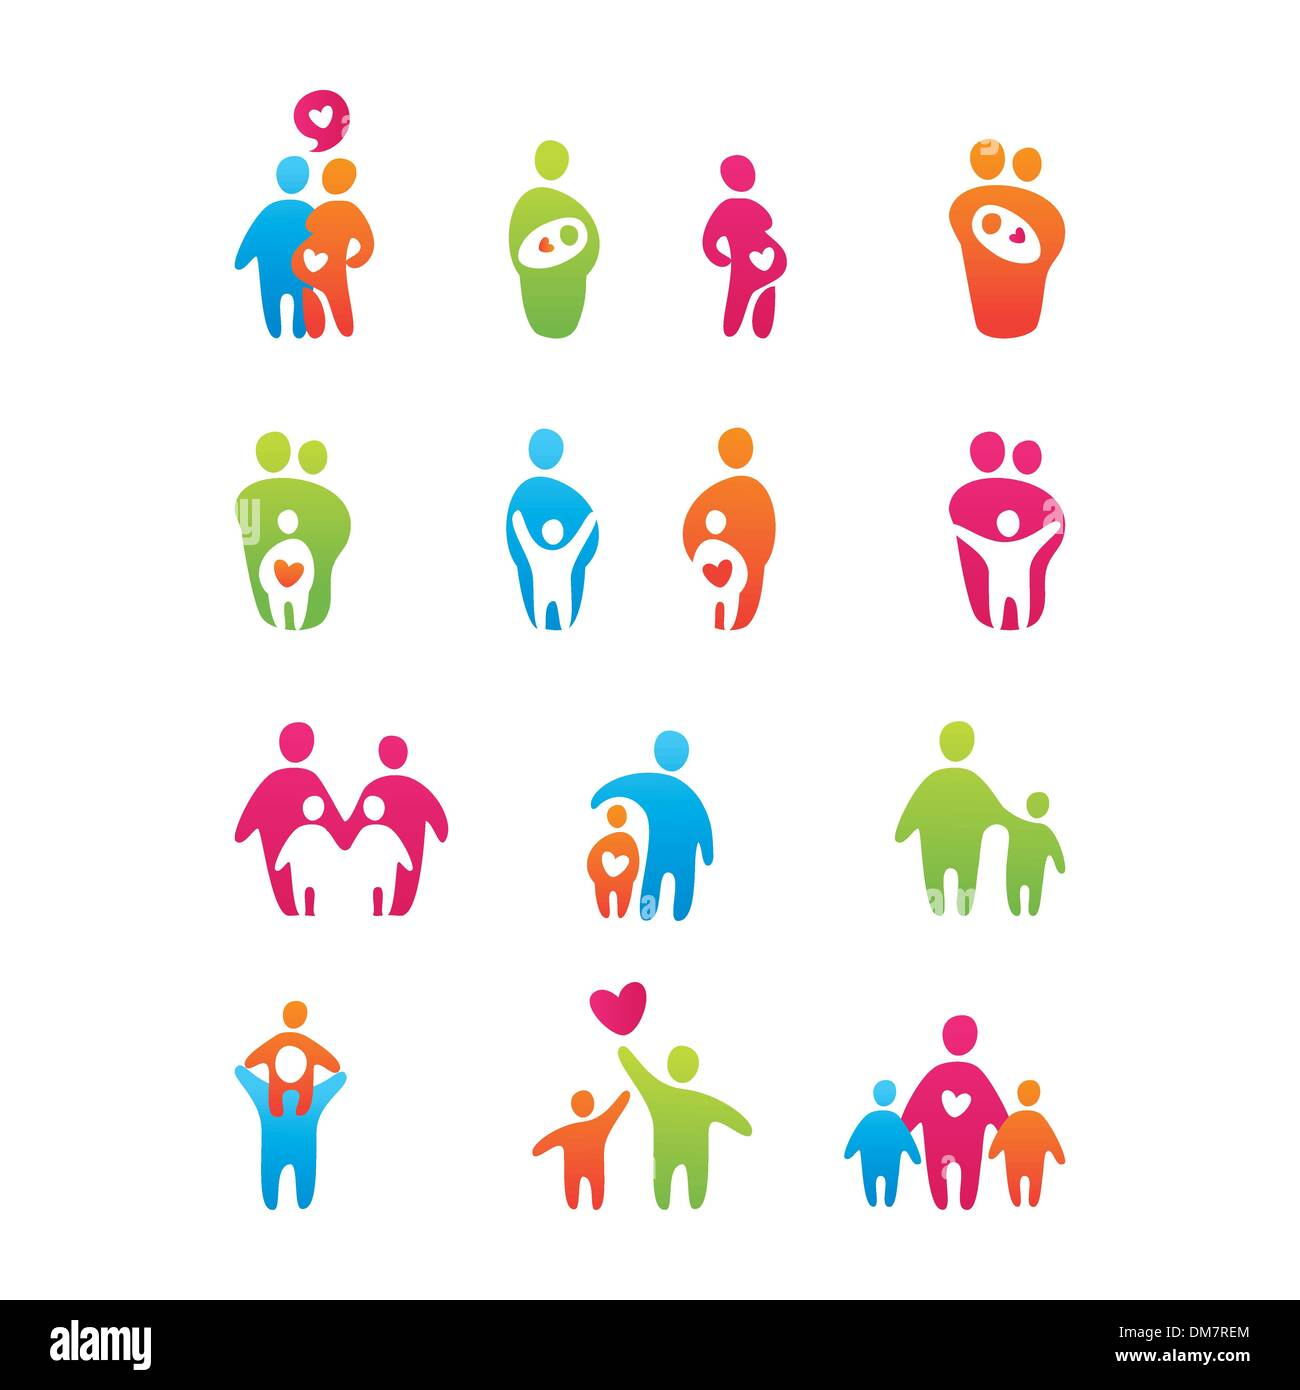 icons-kids-and-parents - Stock Vector